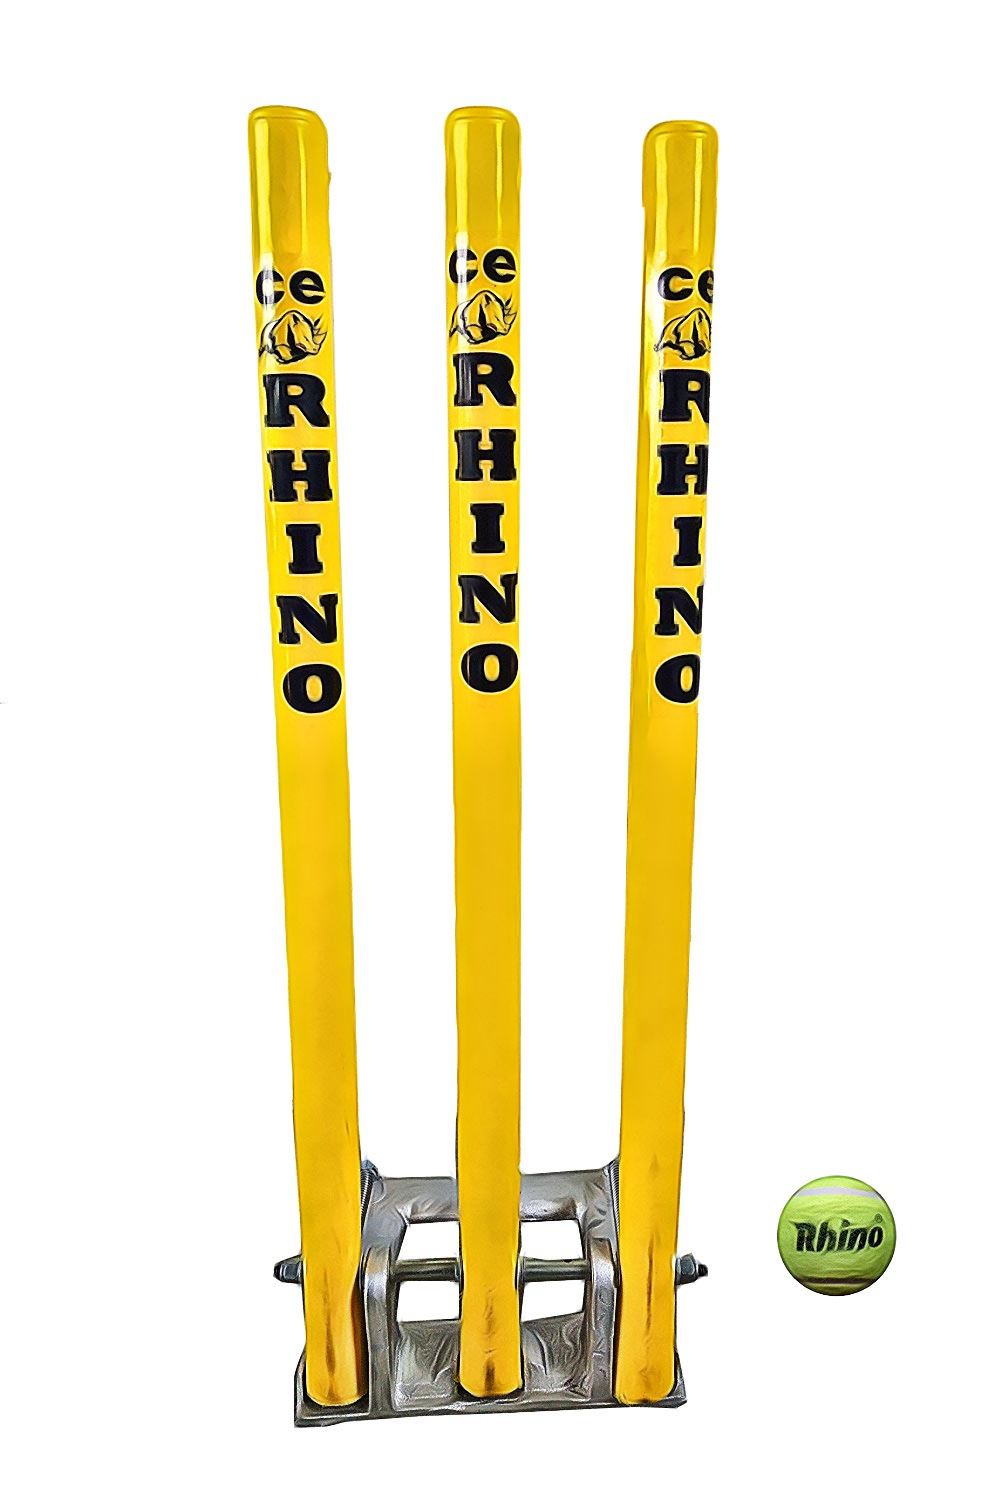 CE Rhino Cricket Spring Back Cricket Stump Set